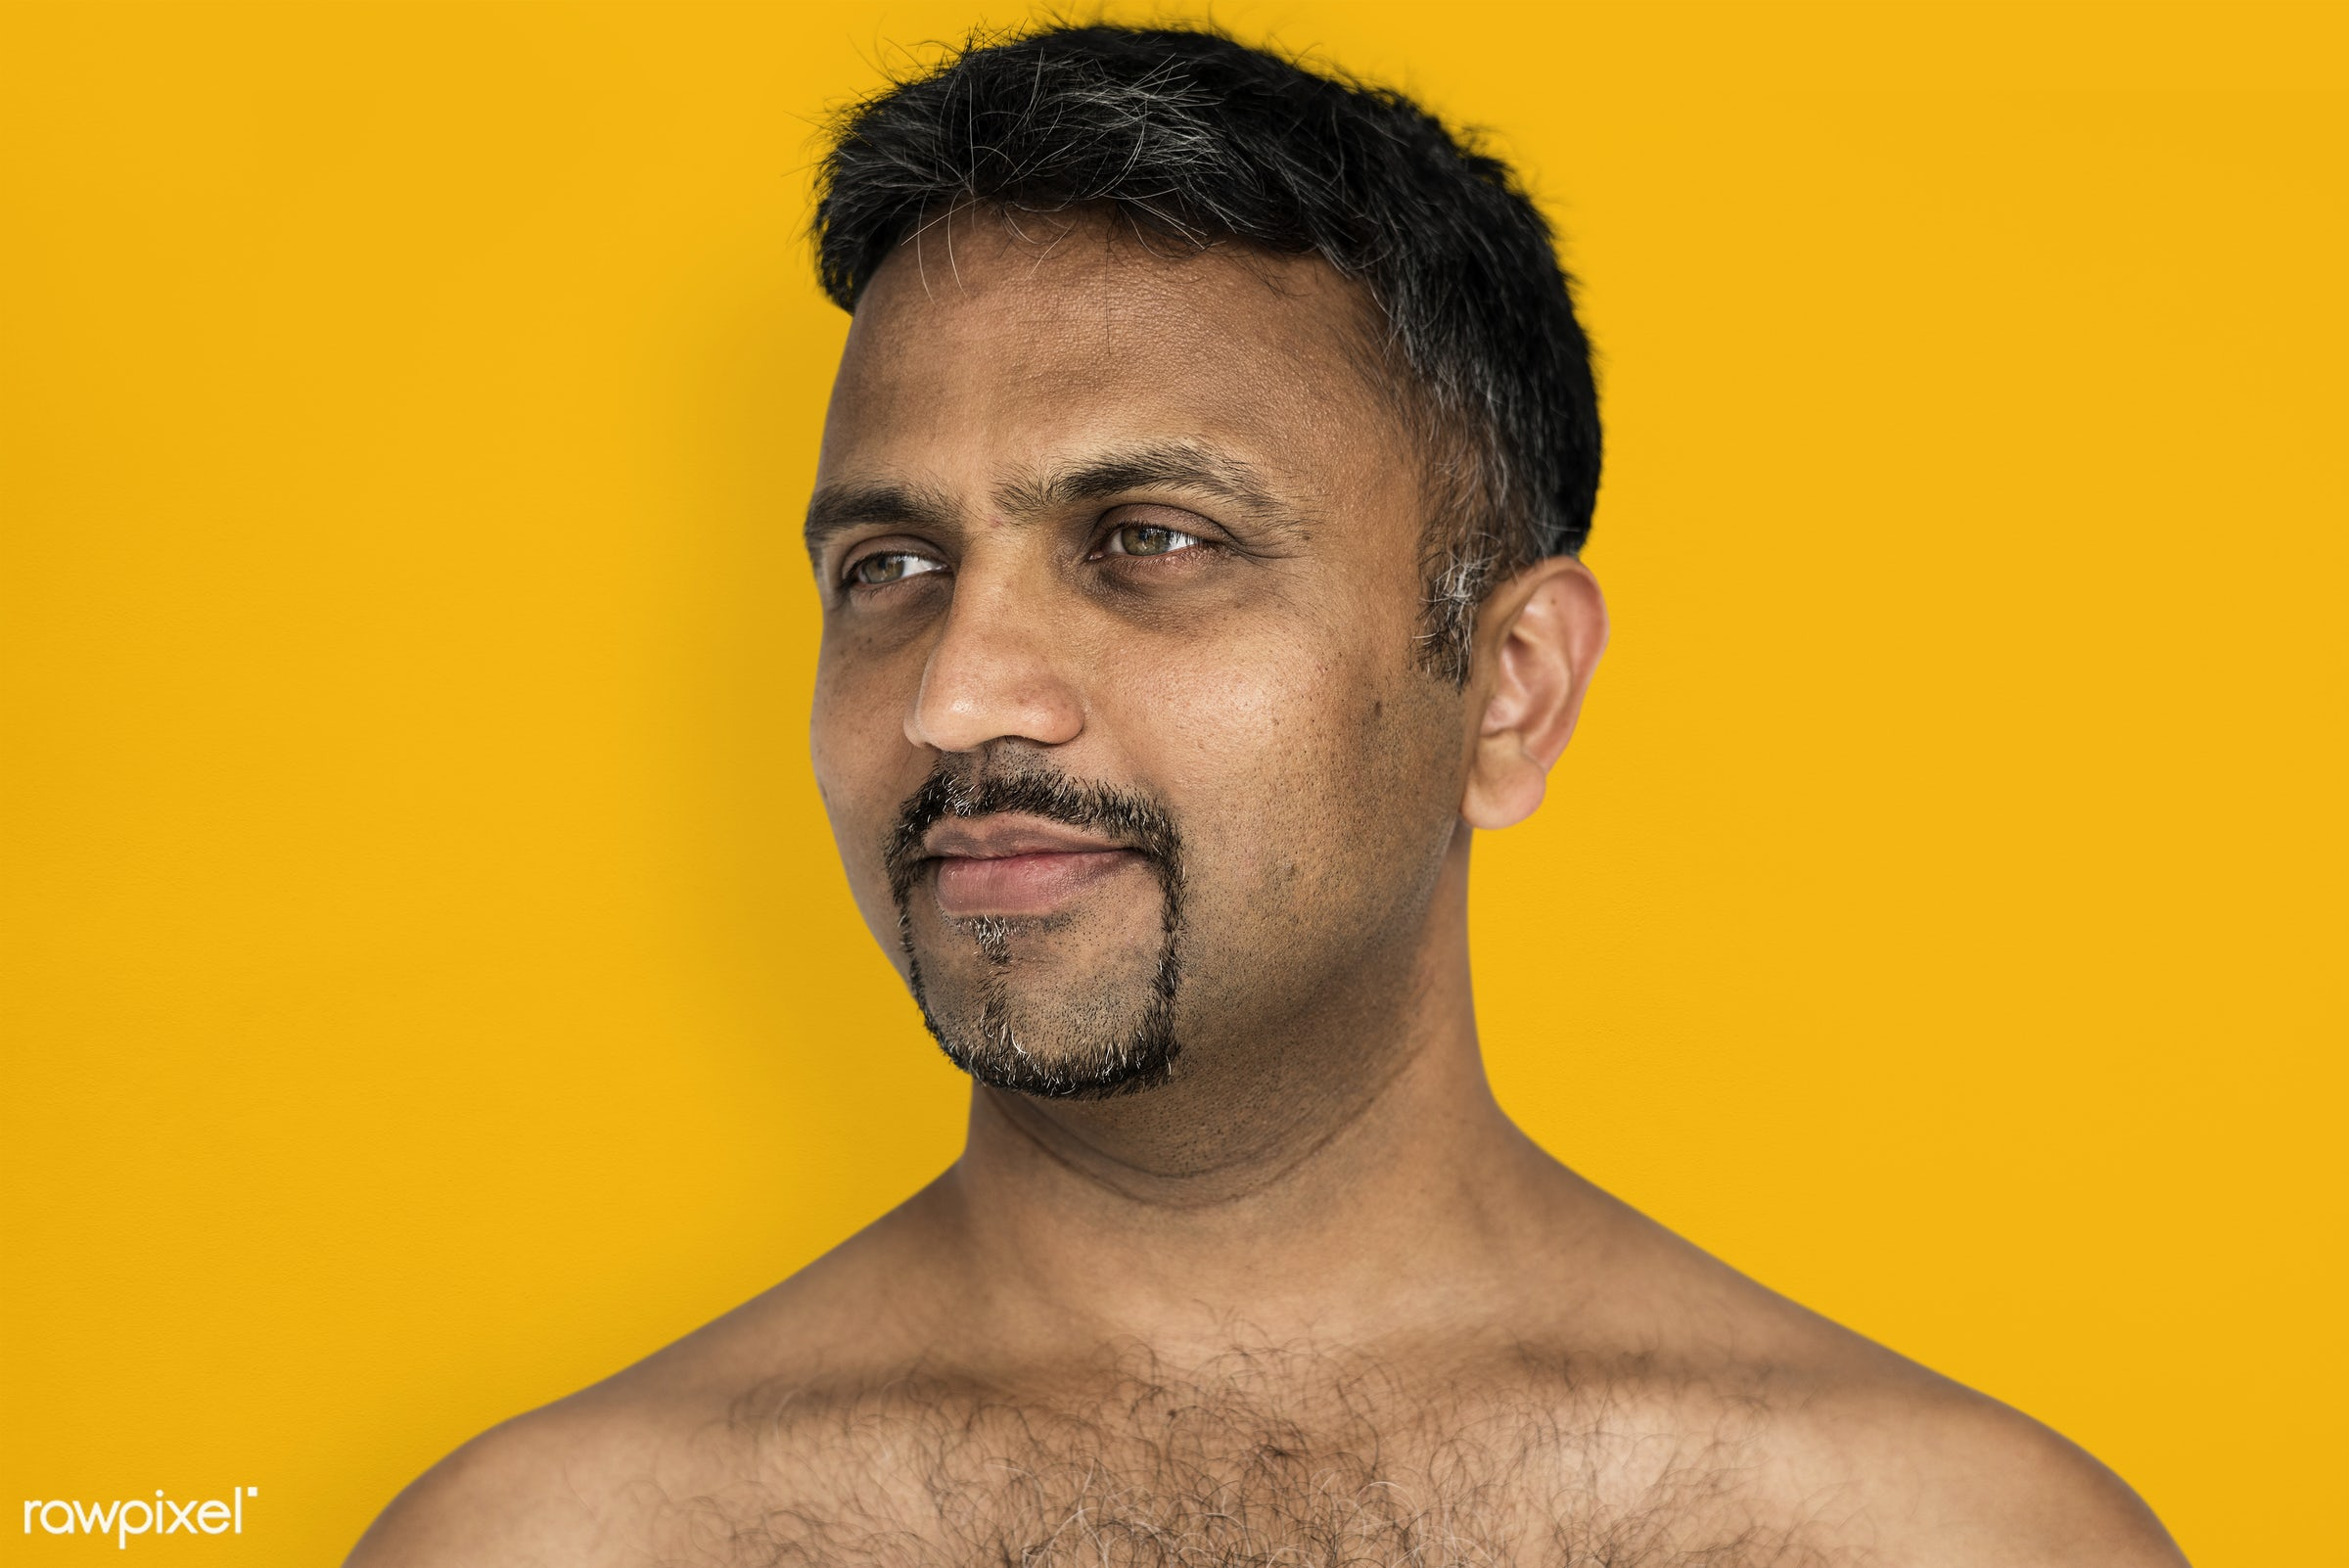 studio, face, person, joy, indian ethnicity, yellow, people, looking, bare chest, solo, happy, smile, cheerful, man, smiling...